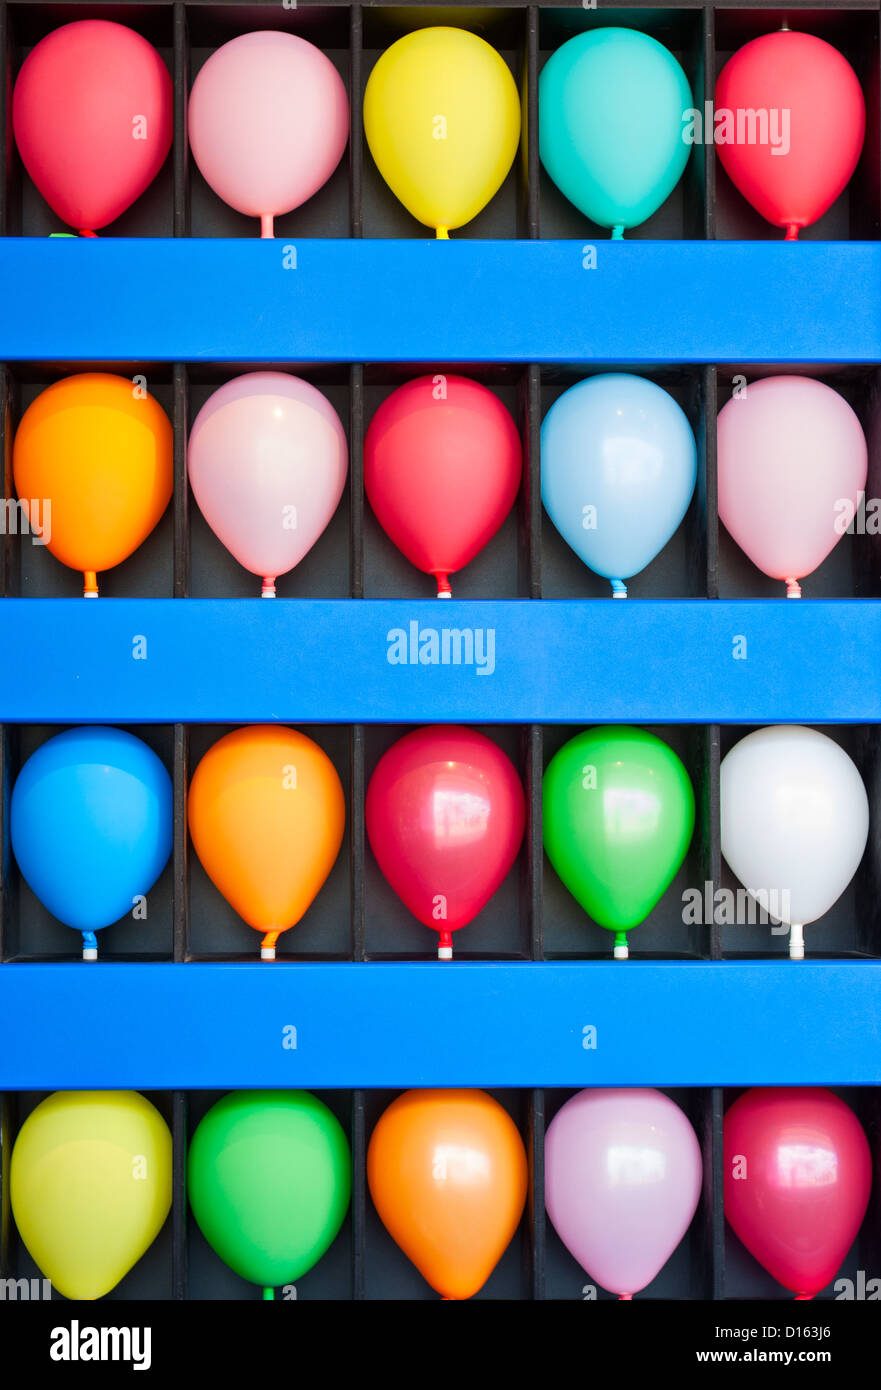 A blue wall case with colorful balloons. Photo is of a boardwalk arcade game. Only the wall case and balloons are - Stock Image